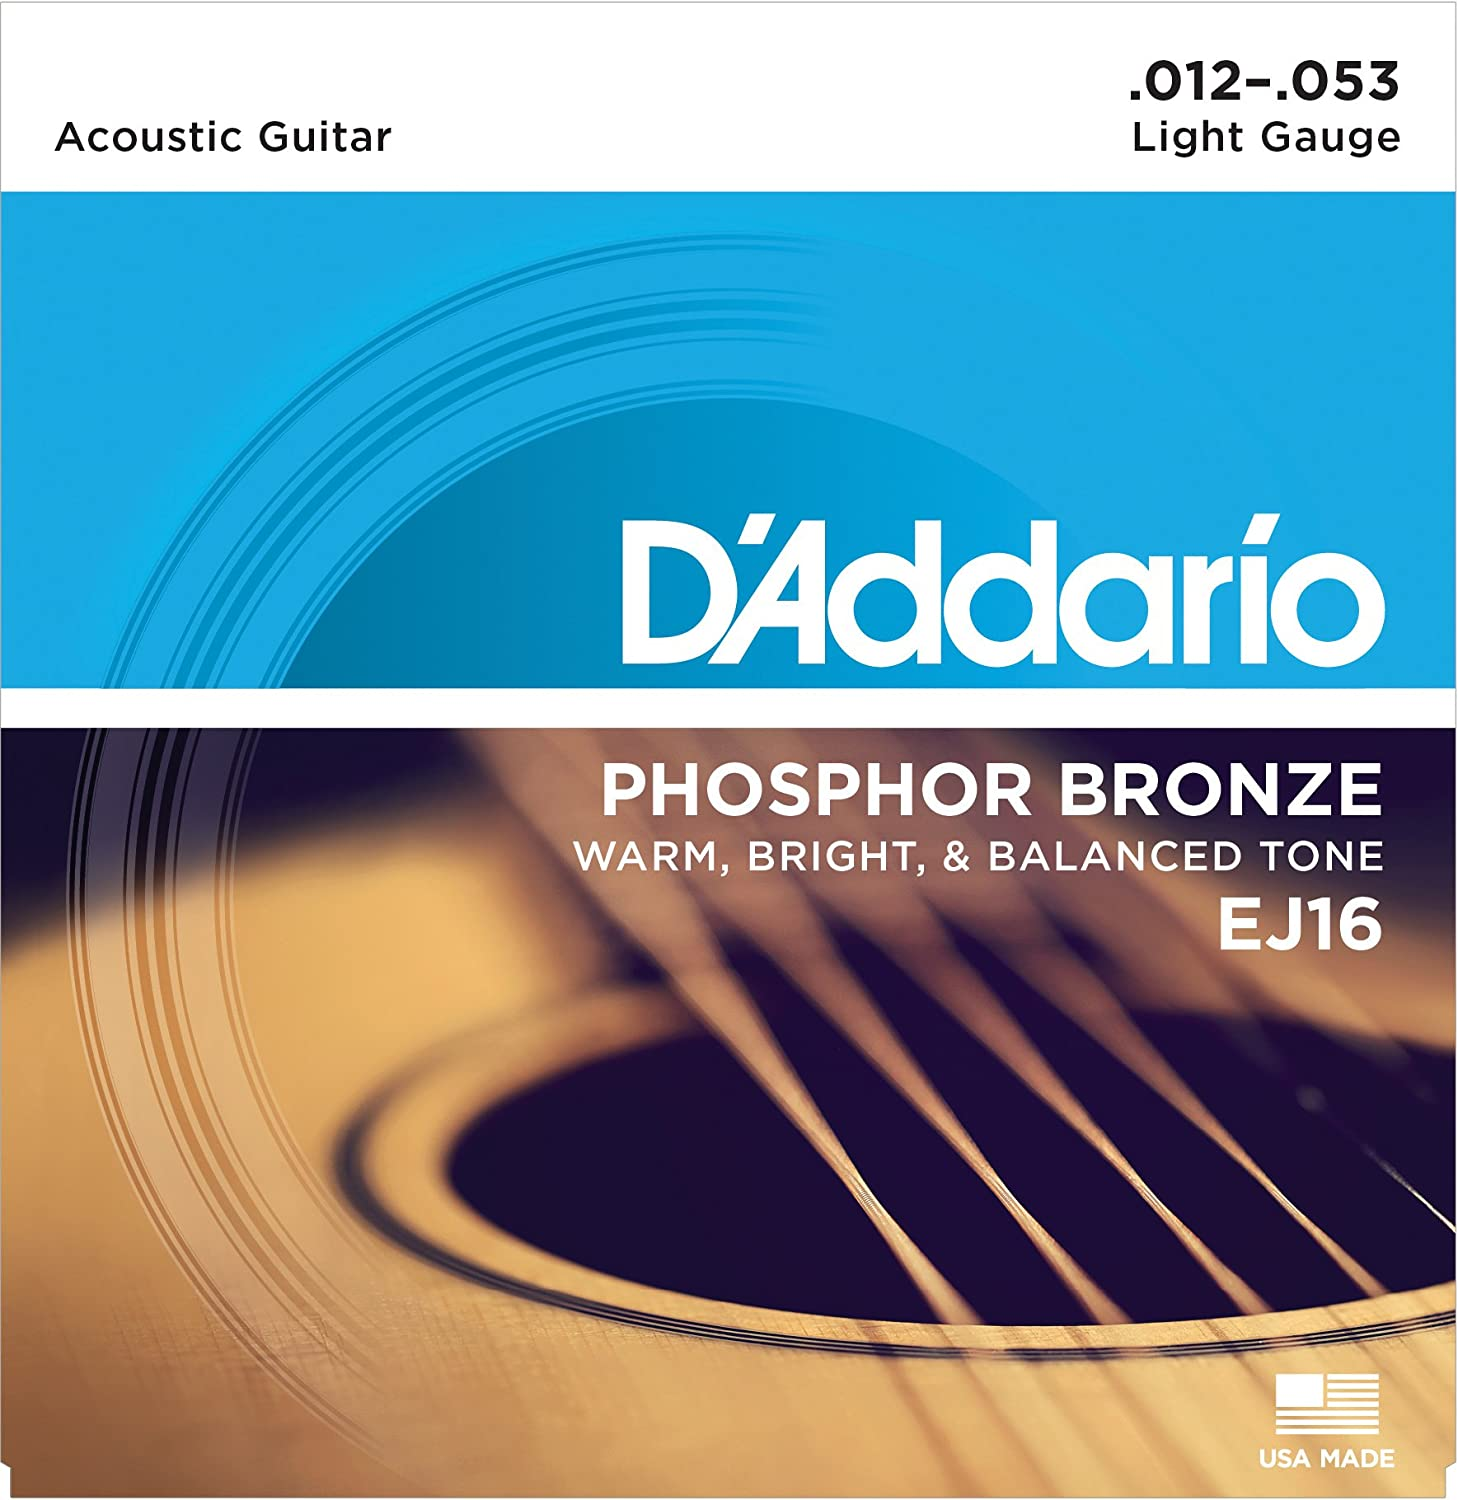 D'Addario EJ16 Phosphor Bronze Acoustic Guitar Strings, Light, 12-53 D' Addario